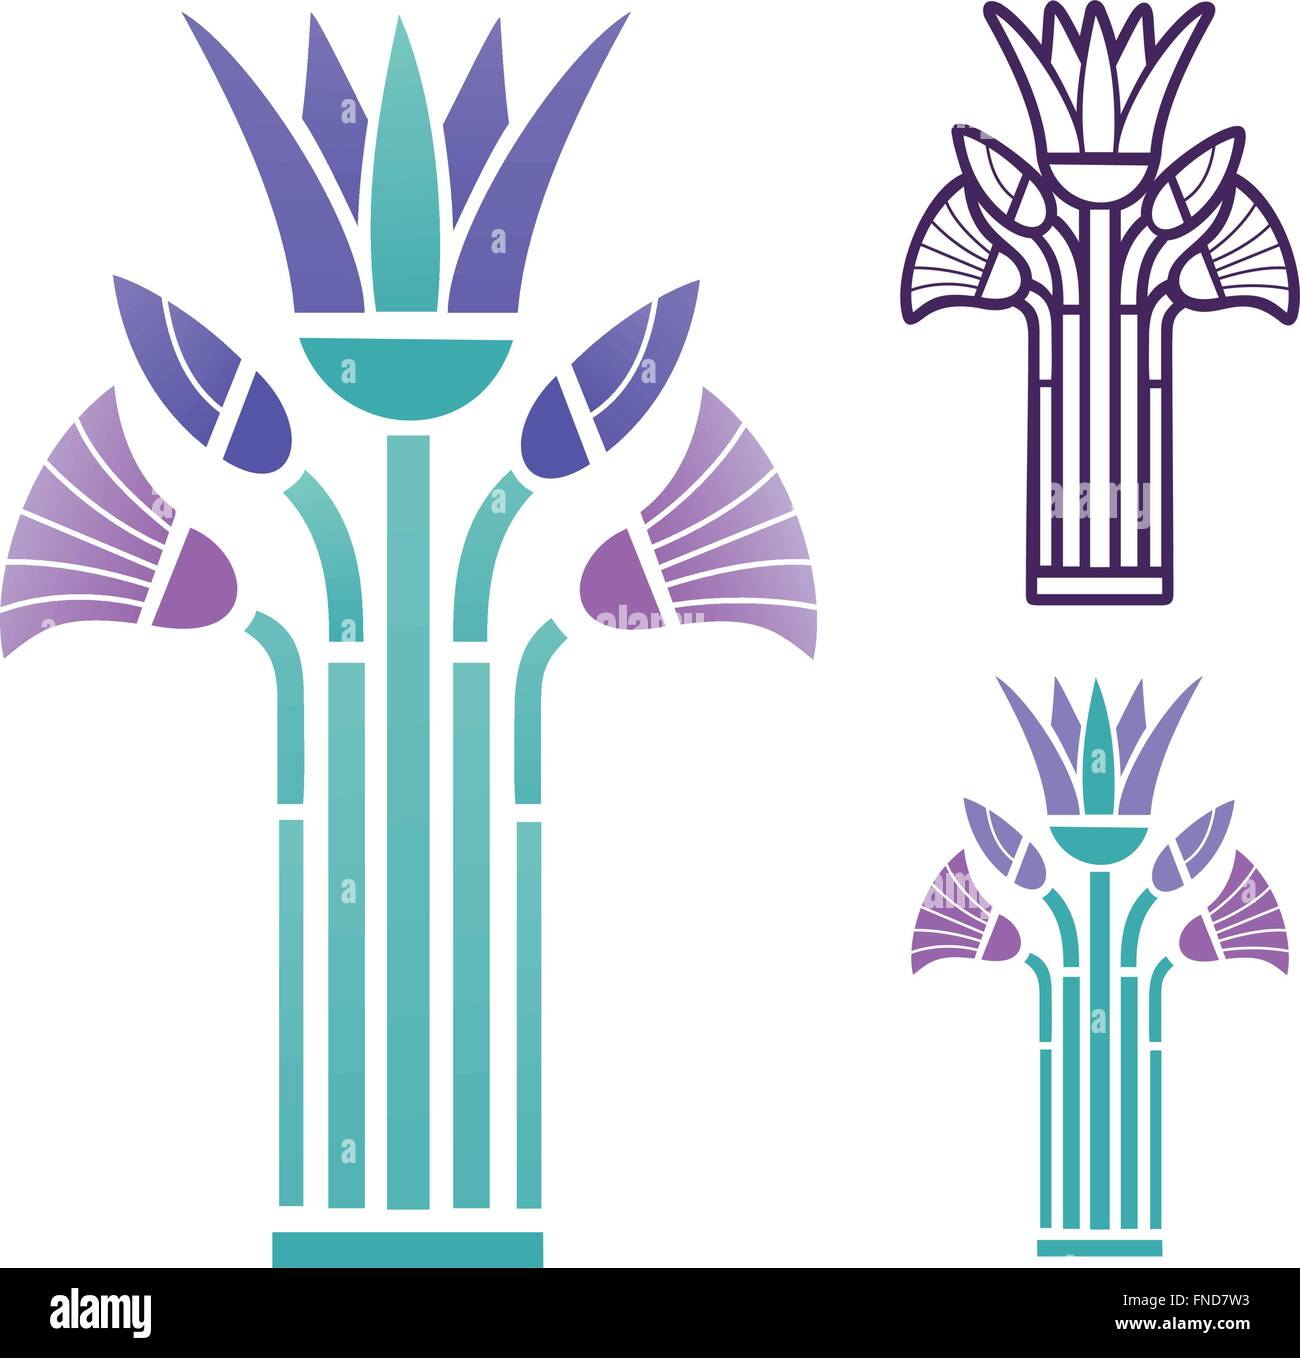 Ancient egyptian papyrus motif in art deco style and colors stock photo roya - Motif style art deco ...